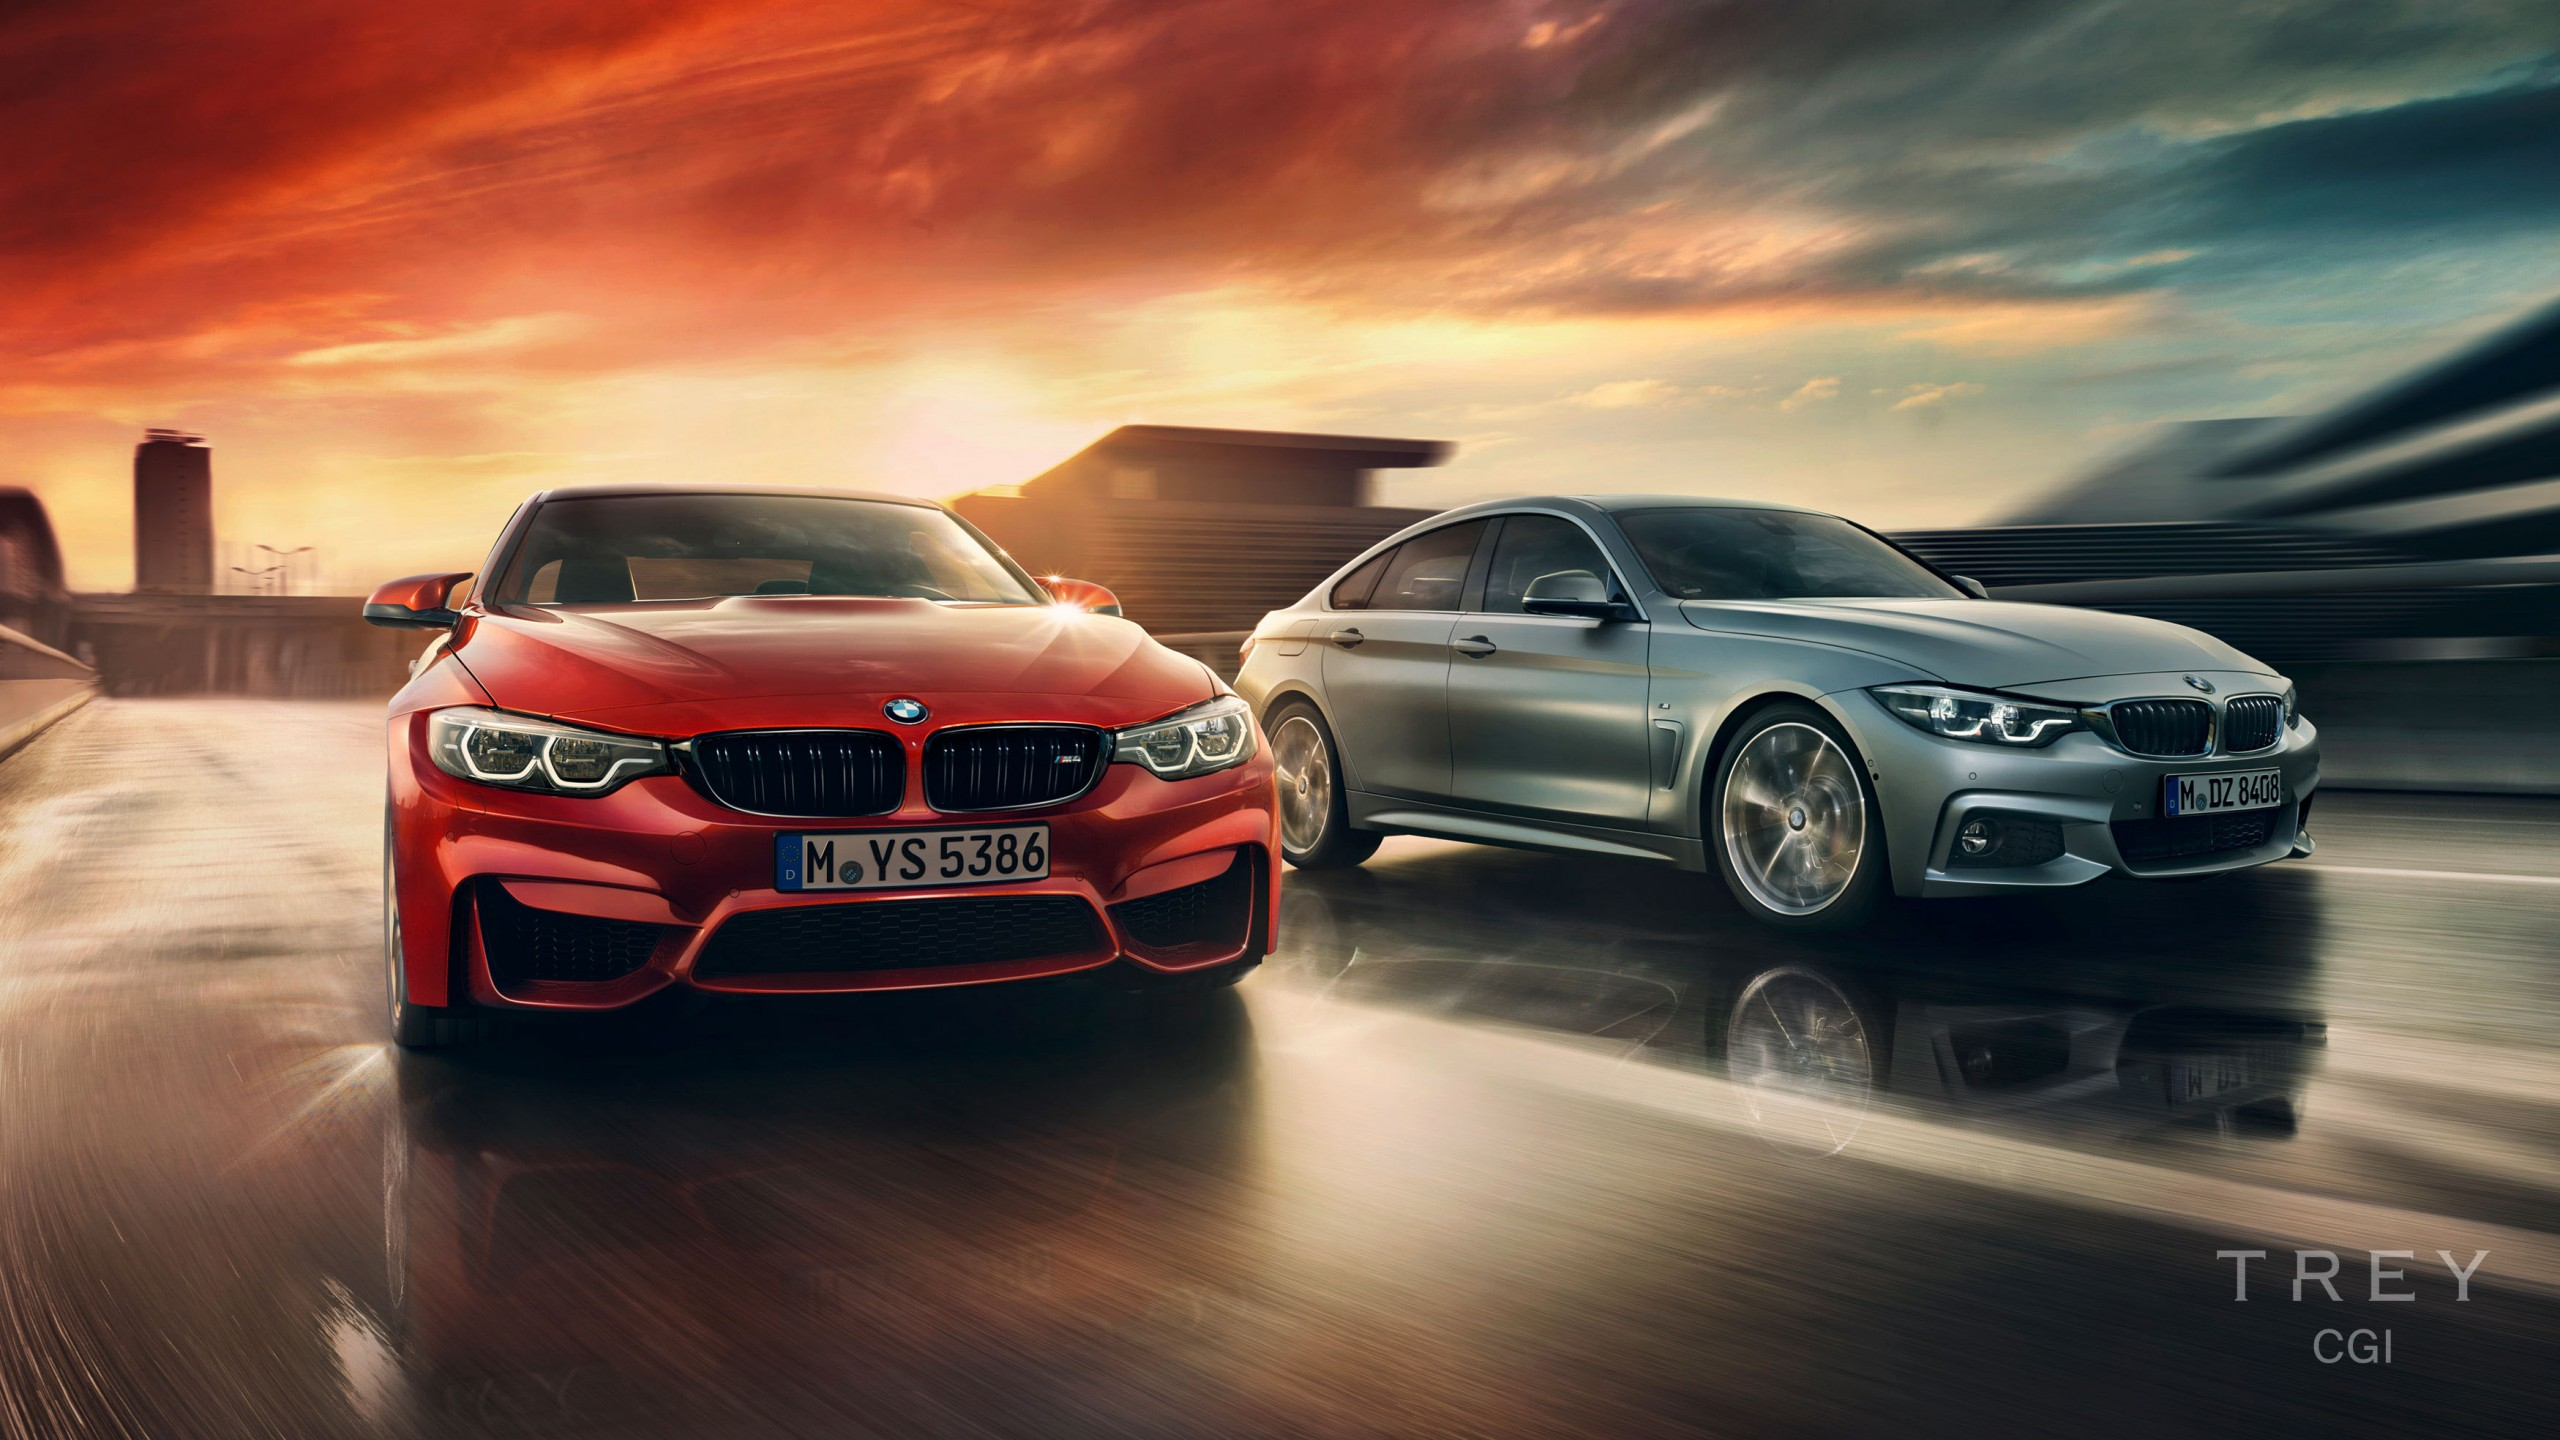 Bmw 4 Series Gran Coupe M3 M4 Wallpaper Hd Car